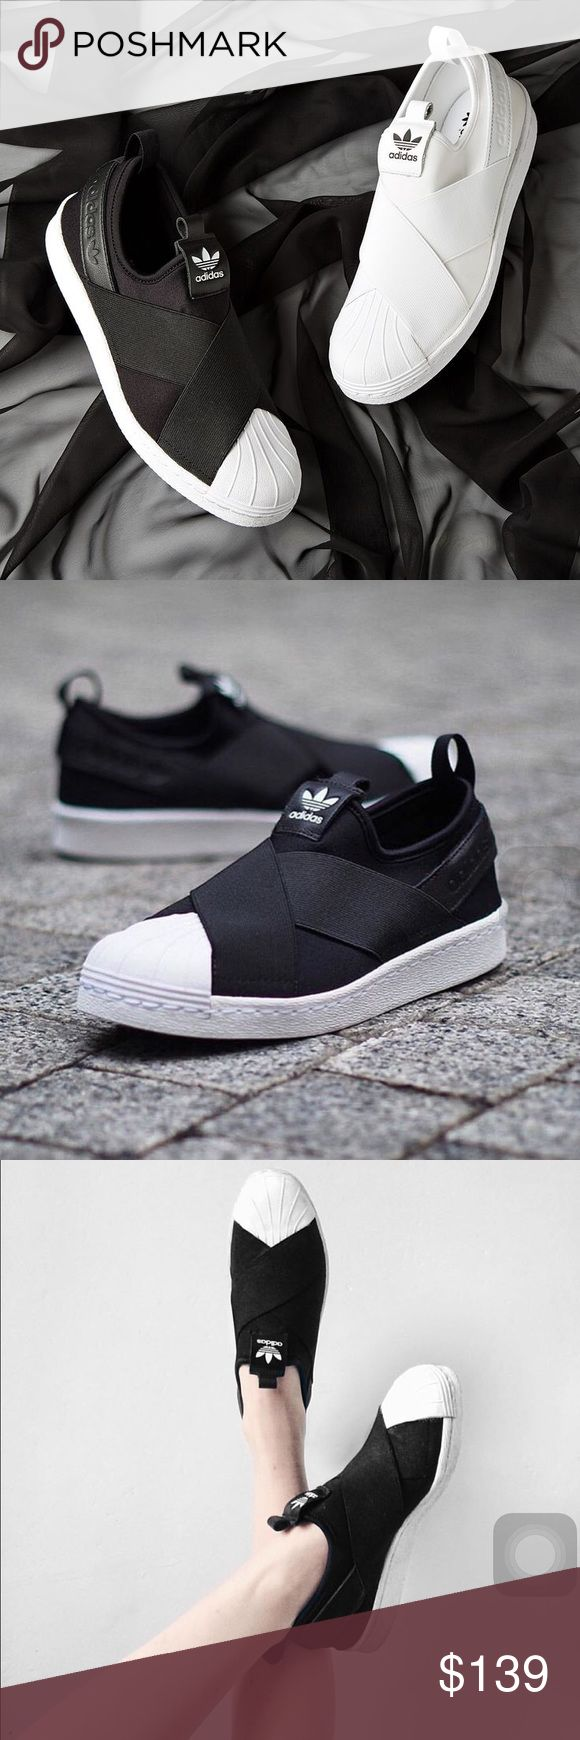 Adidas Superstar Slip on in Black & White Available in both colors and all sizes Adidas Shoes Sneakers